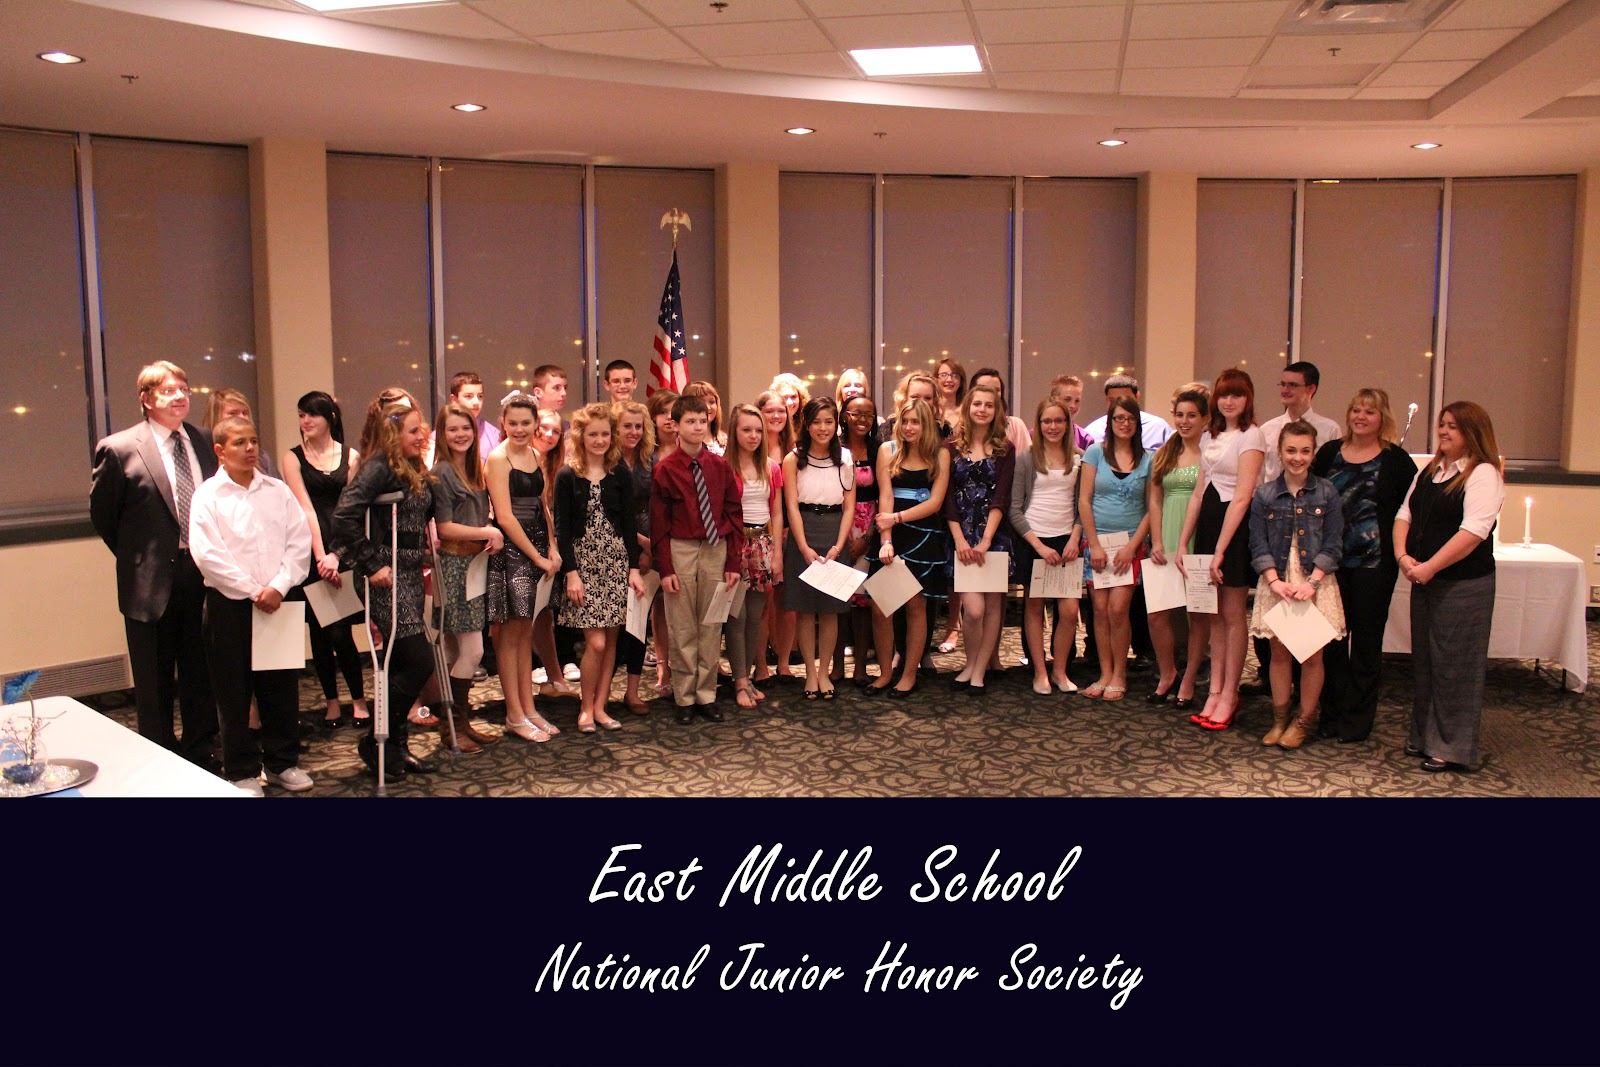 national honors society induction essay Students who meet all requirements which include, application, essays, teacher recommendations, meet the deadline for submission and faculty selection council approval, will be invited to join the national honor society in the early spring of.